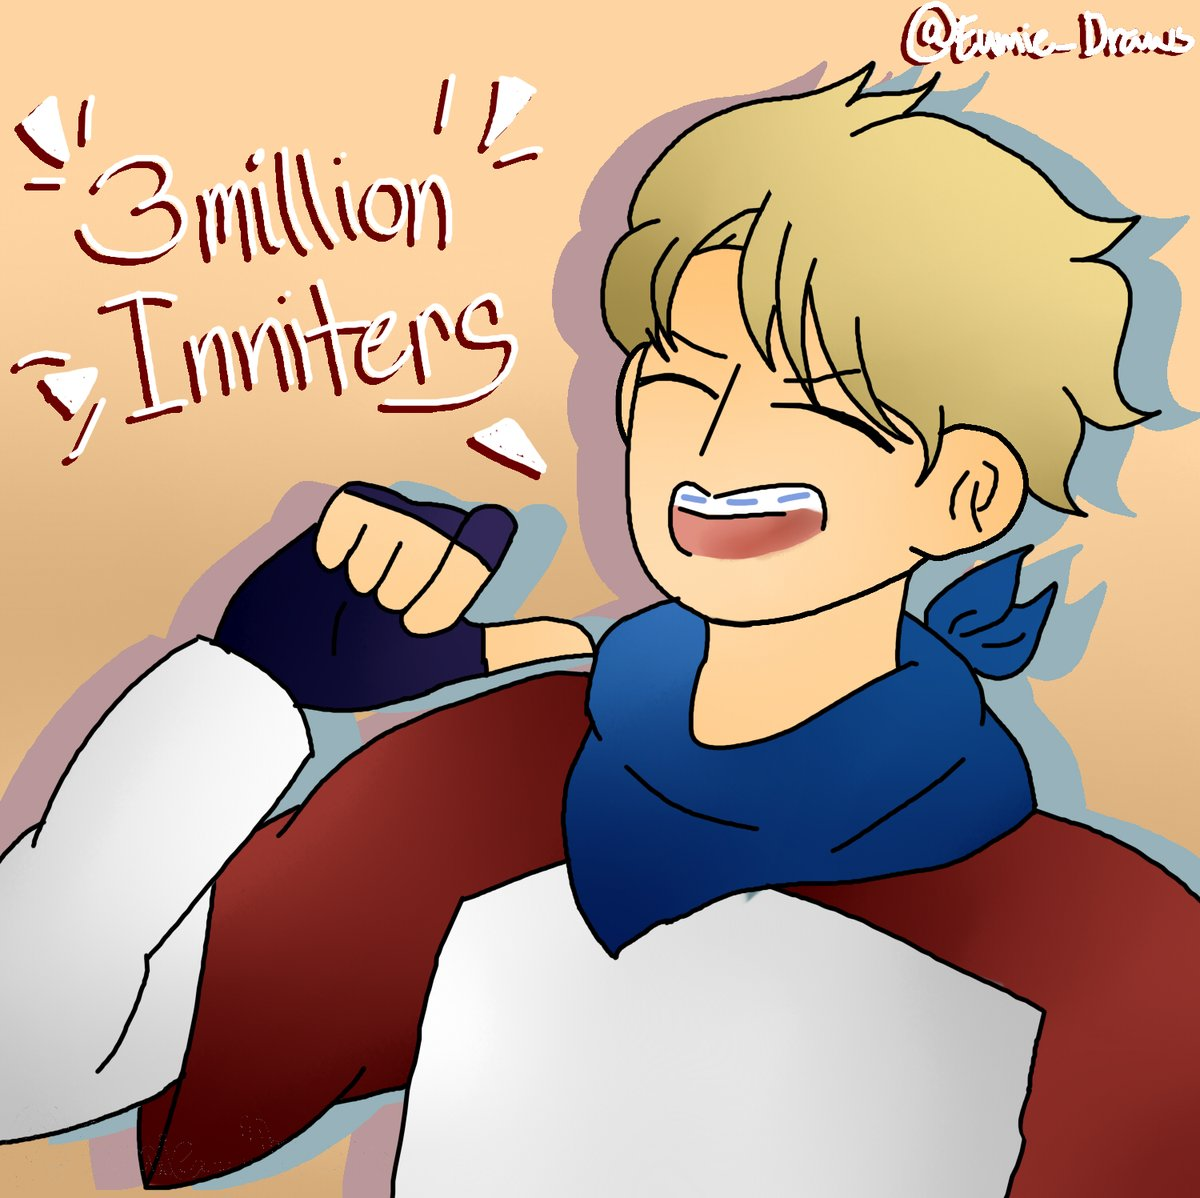 LET'S GO MY DUDE! CONGRATS ON 3 MIL @tommyinnit !  Here's for more milestones!  [dont qt rt just rt and untag ccs when replying]  #tommy3mil #tommyinnitfanart #3MillionInniters #tommyinnit3mil #mcyt #mcytfanart #tommyfanart #mcyttwt